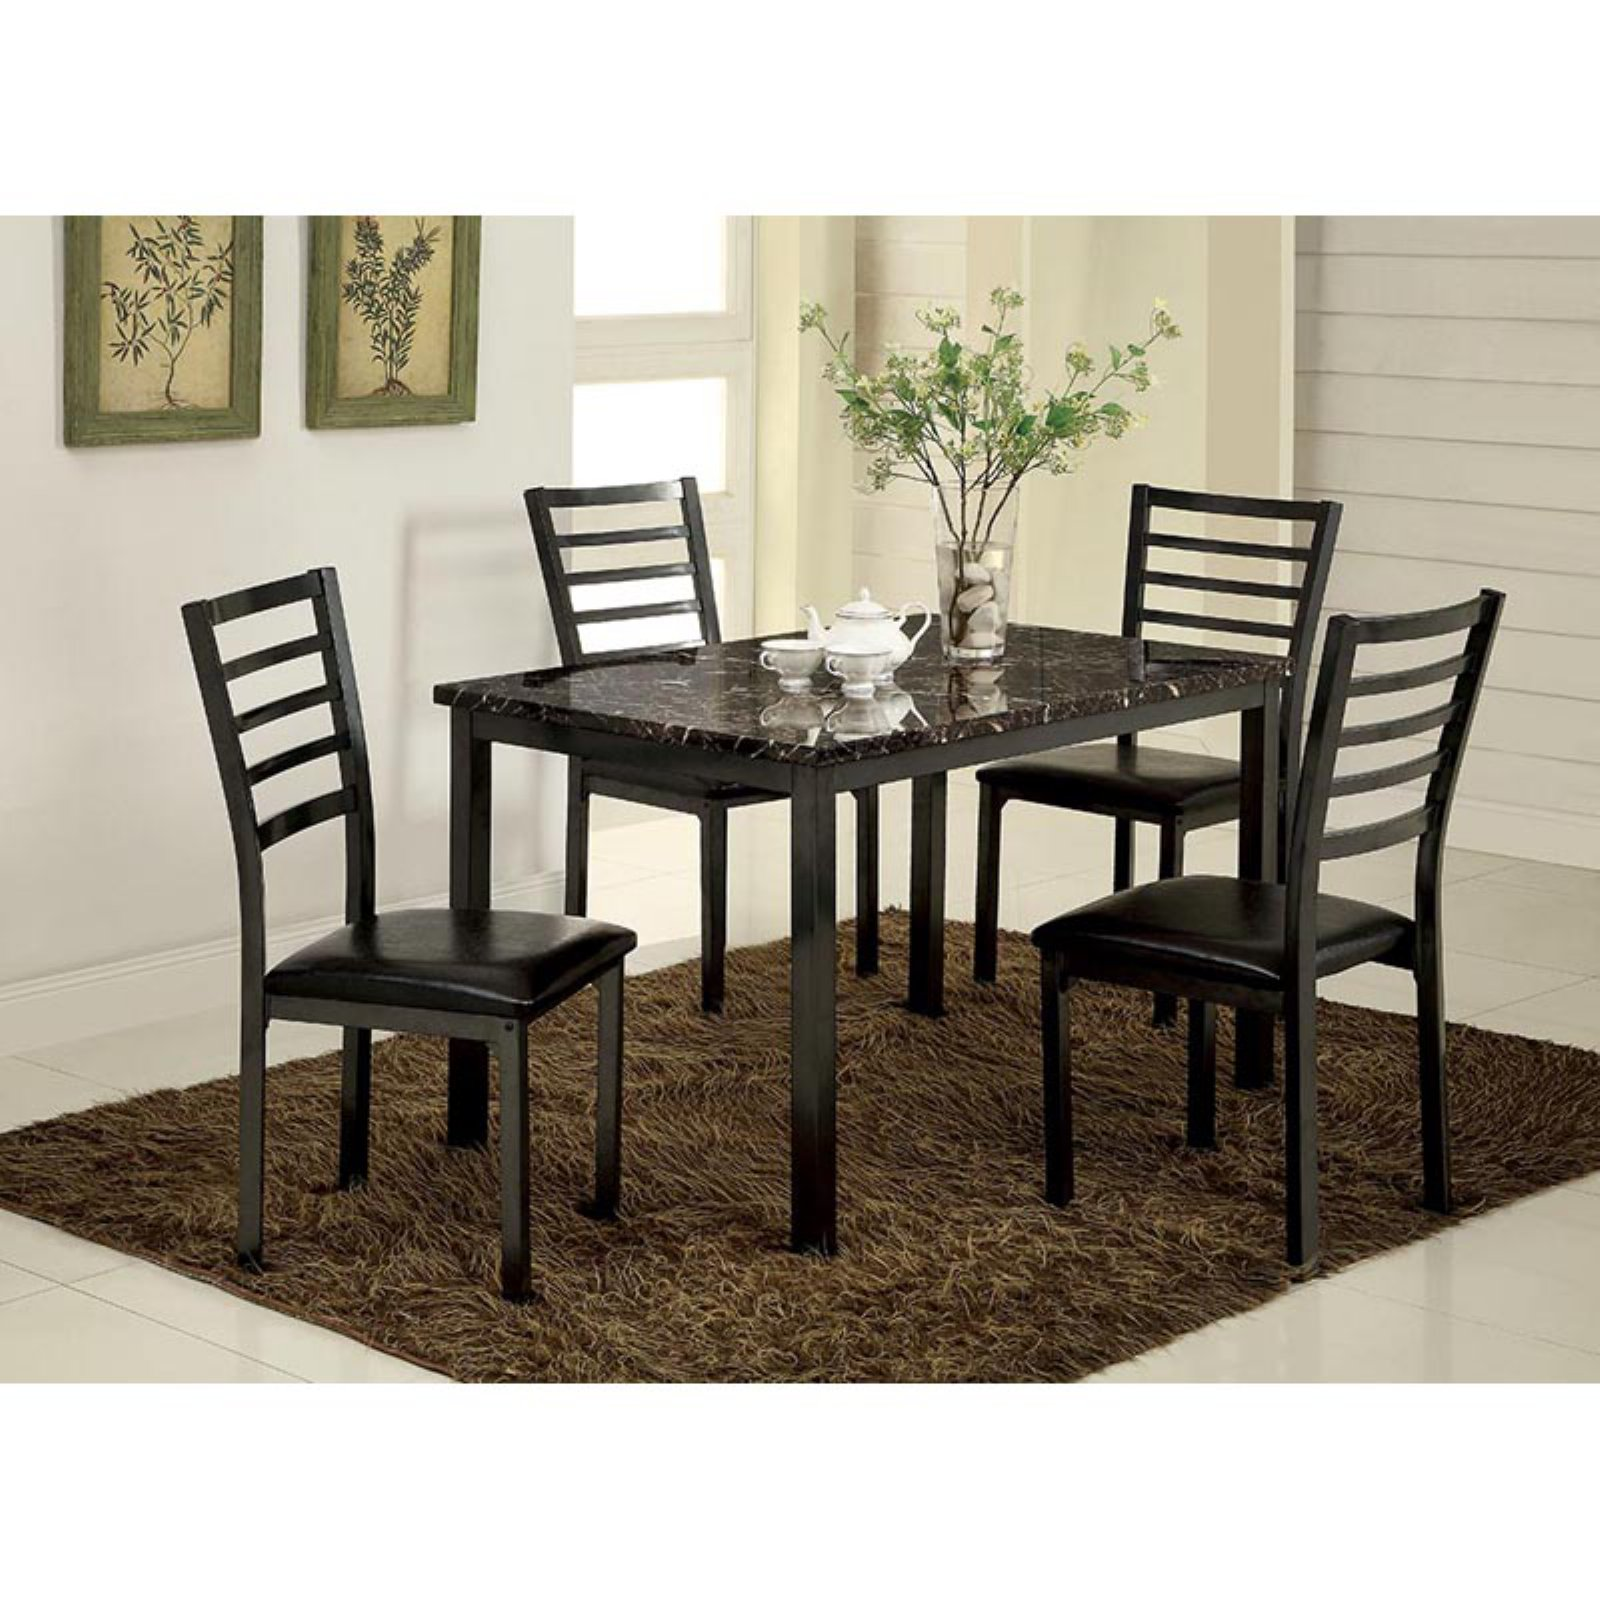 Furniture of America Katzman 48 in. Dining Table